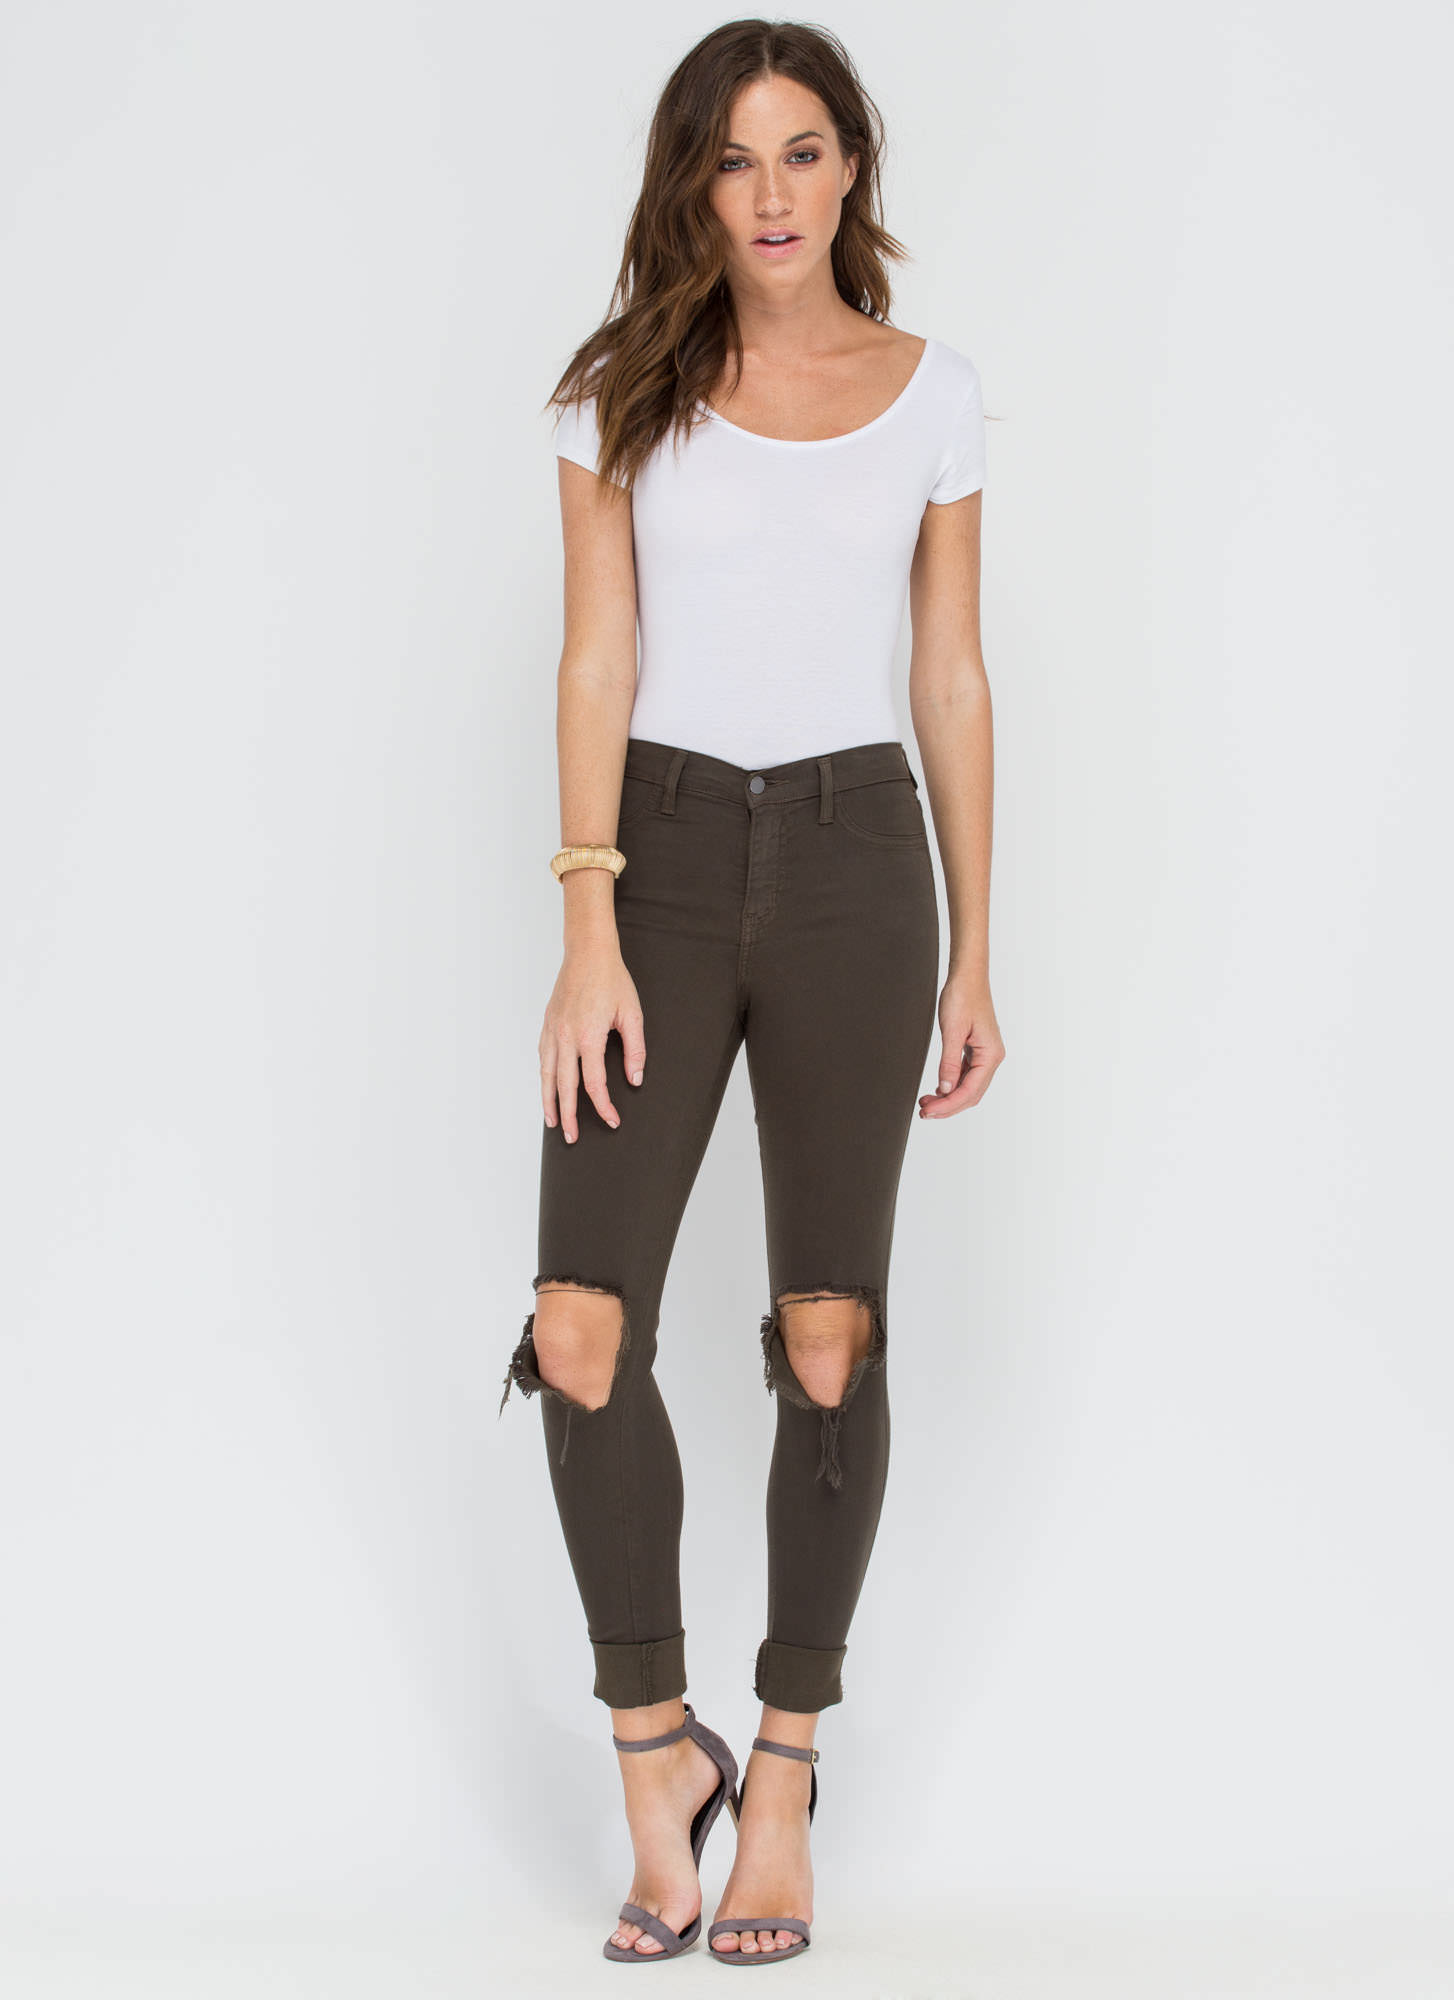 Make The Cut-Out Distressed Skinny Jeans OLIVE